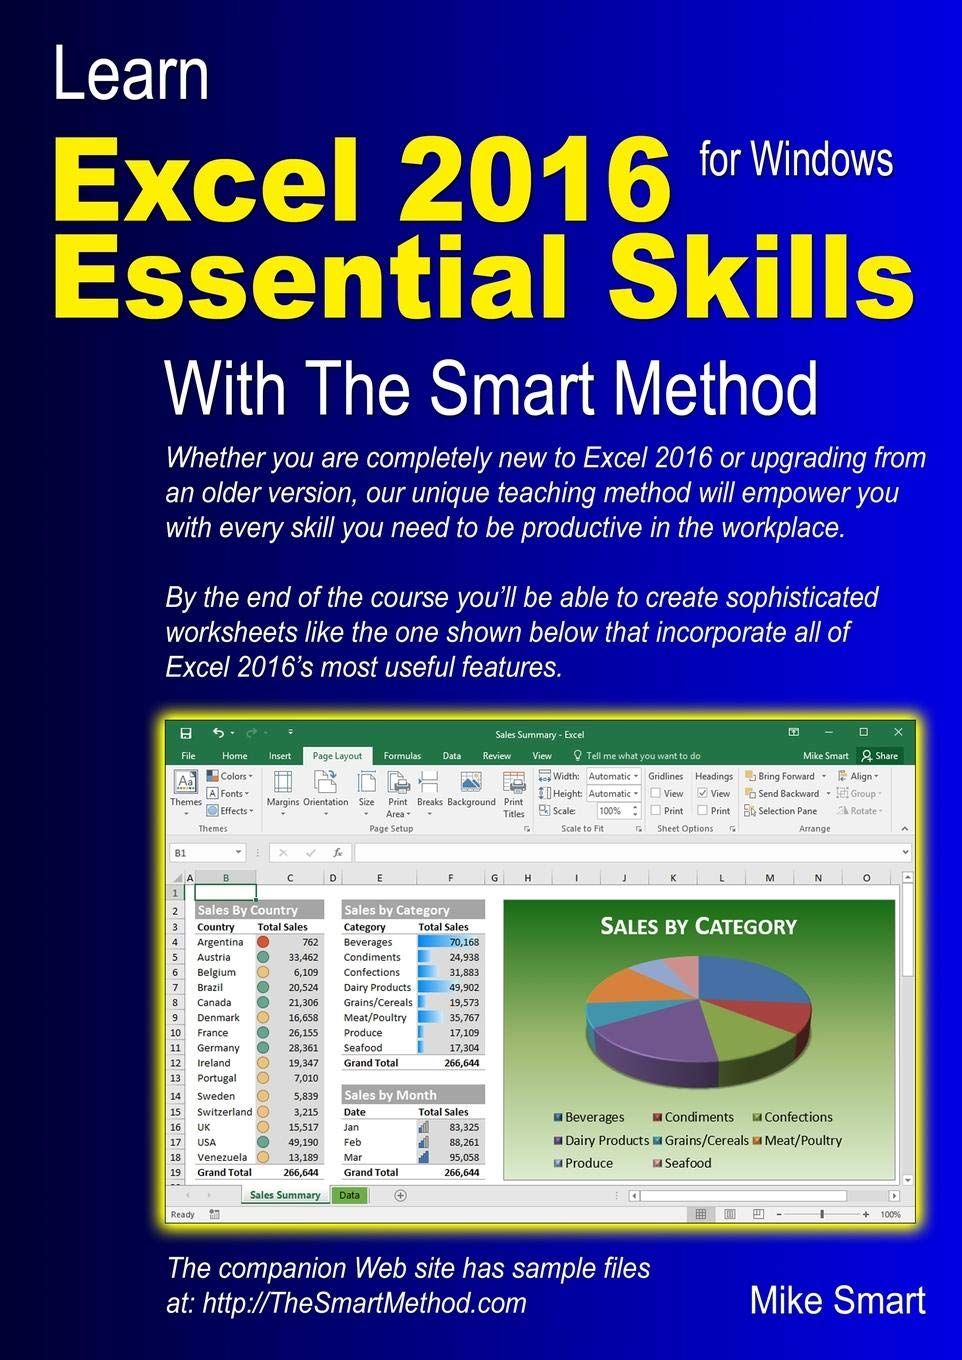 Download Learn Excel 2016 Essential Skills with The Smart Method: Courseware tutorial for self-instruction to beginner and intermediate level PDF